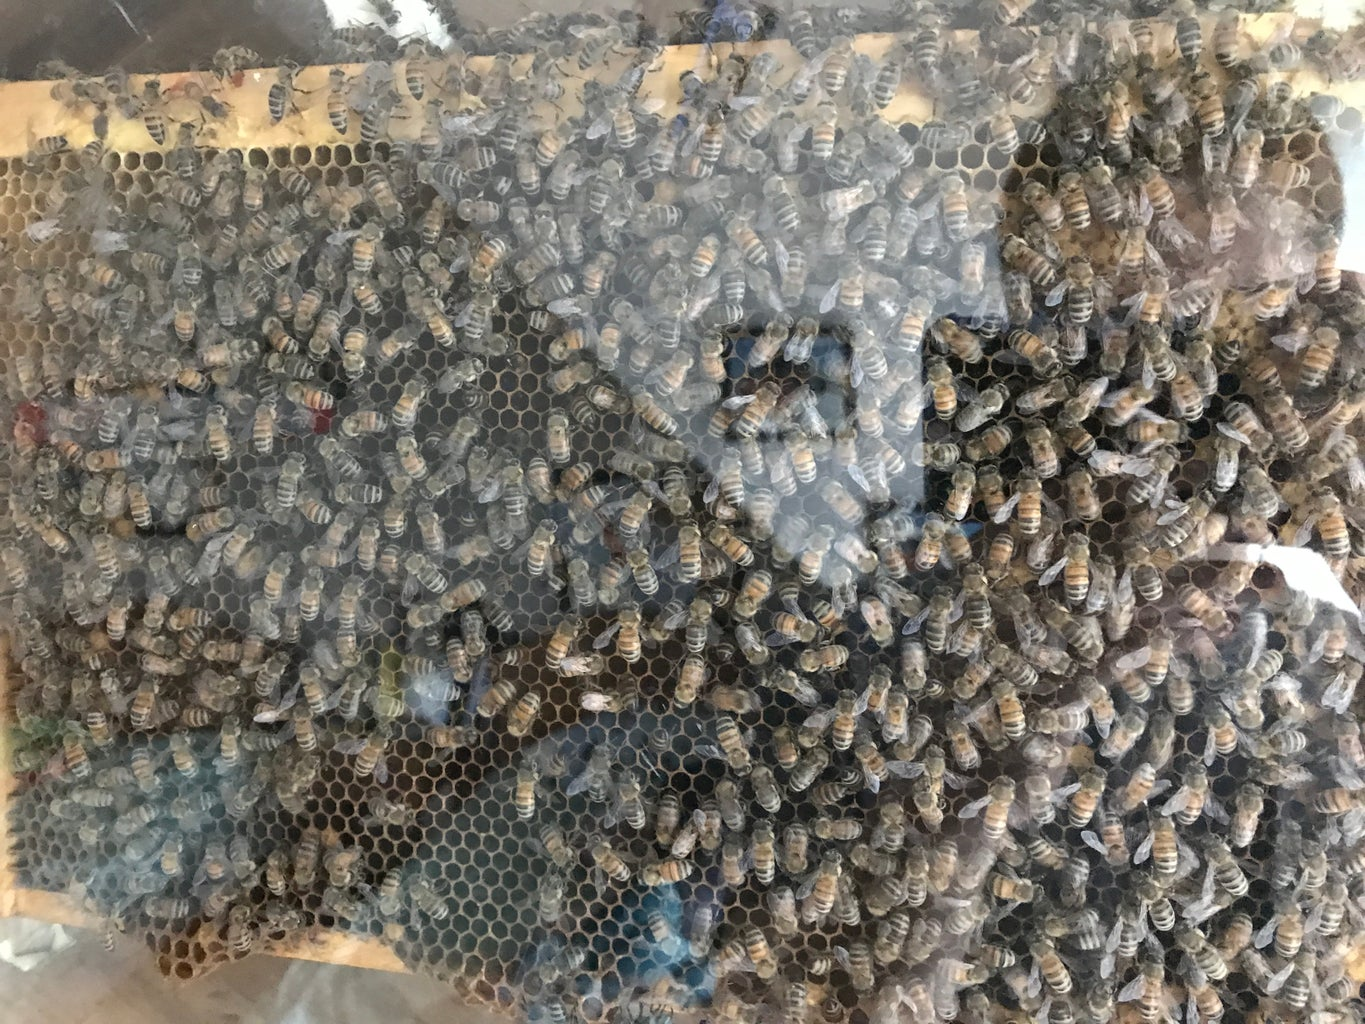 Enjoy Watching Your Bees!